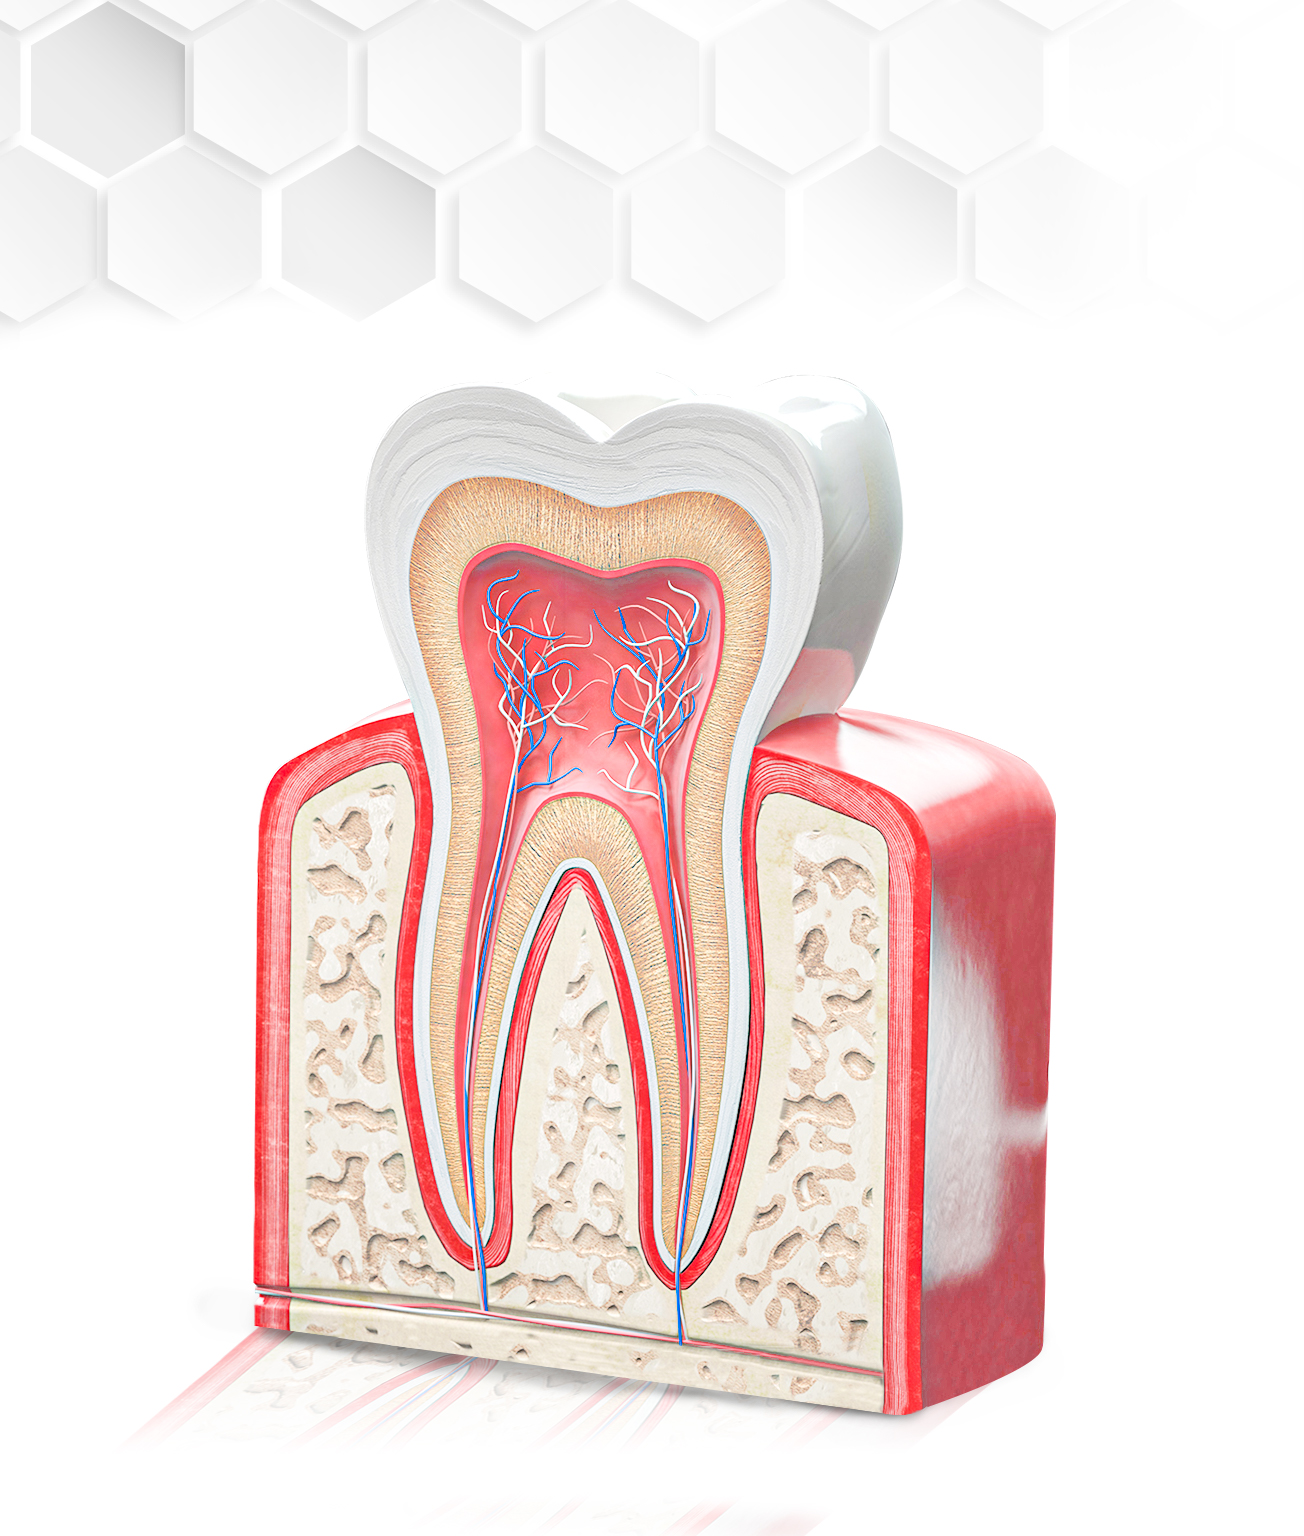 Root Canal in Mexico